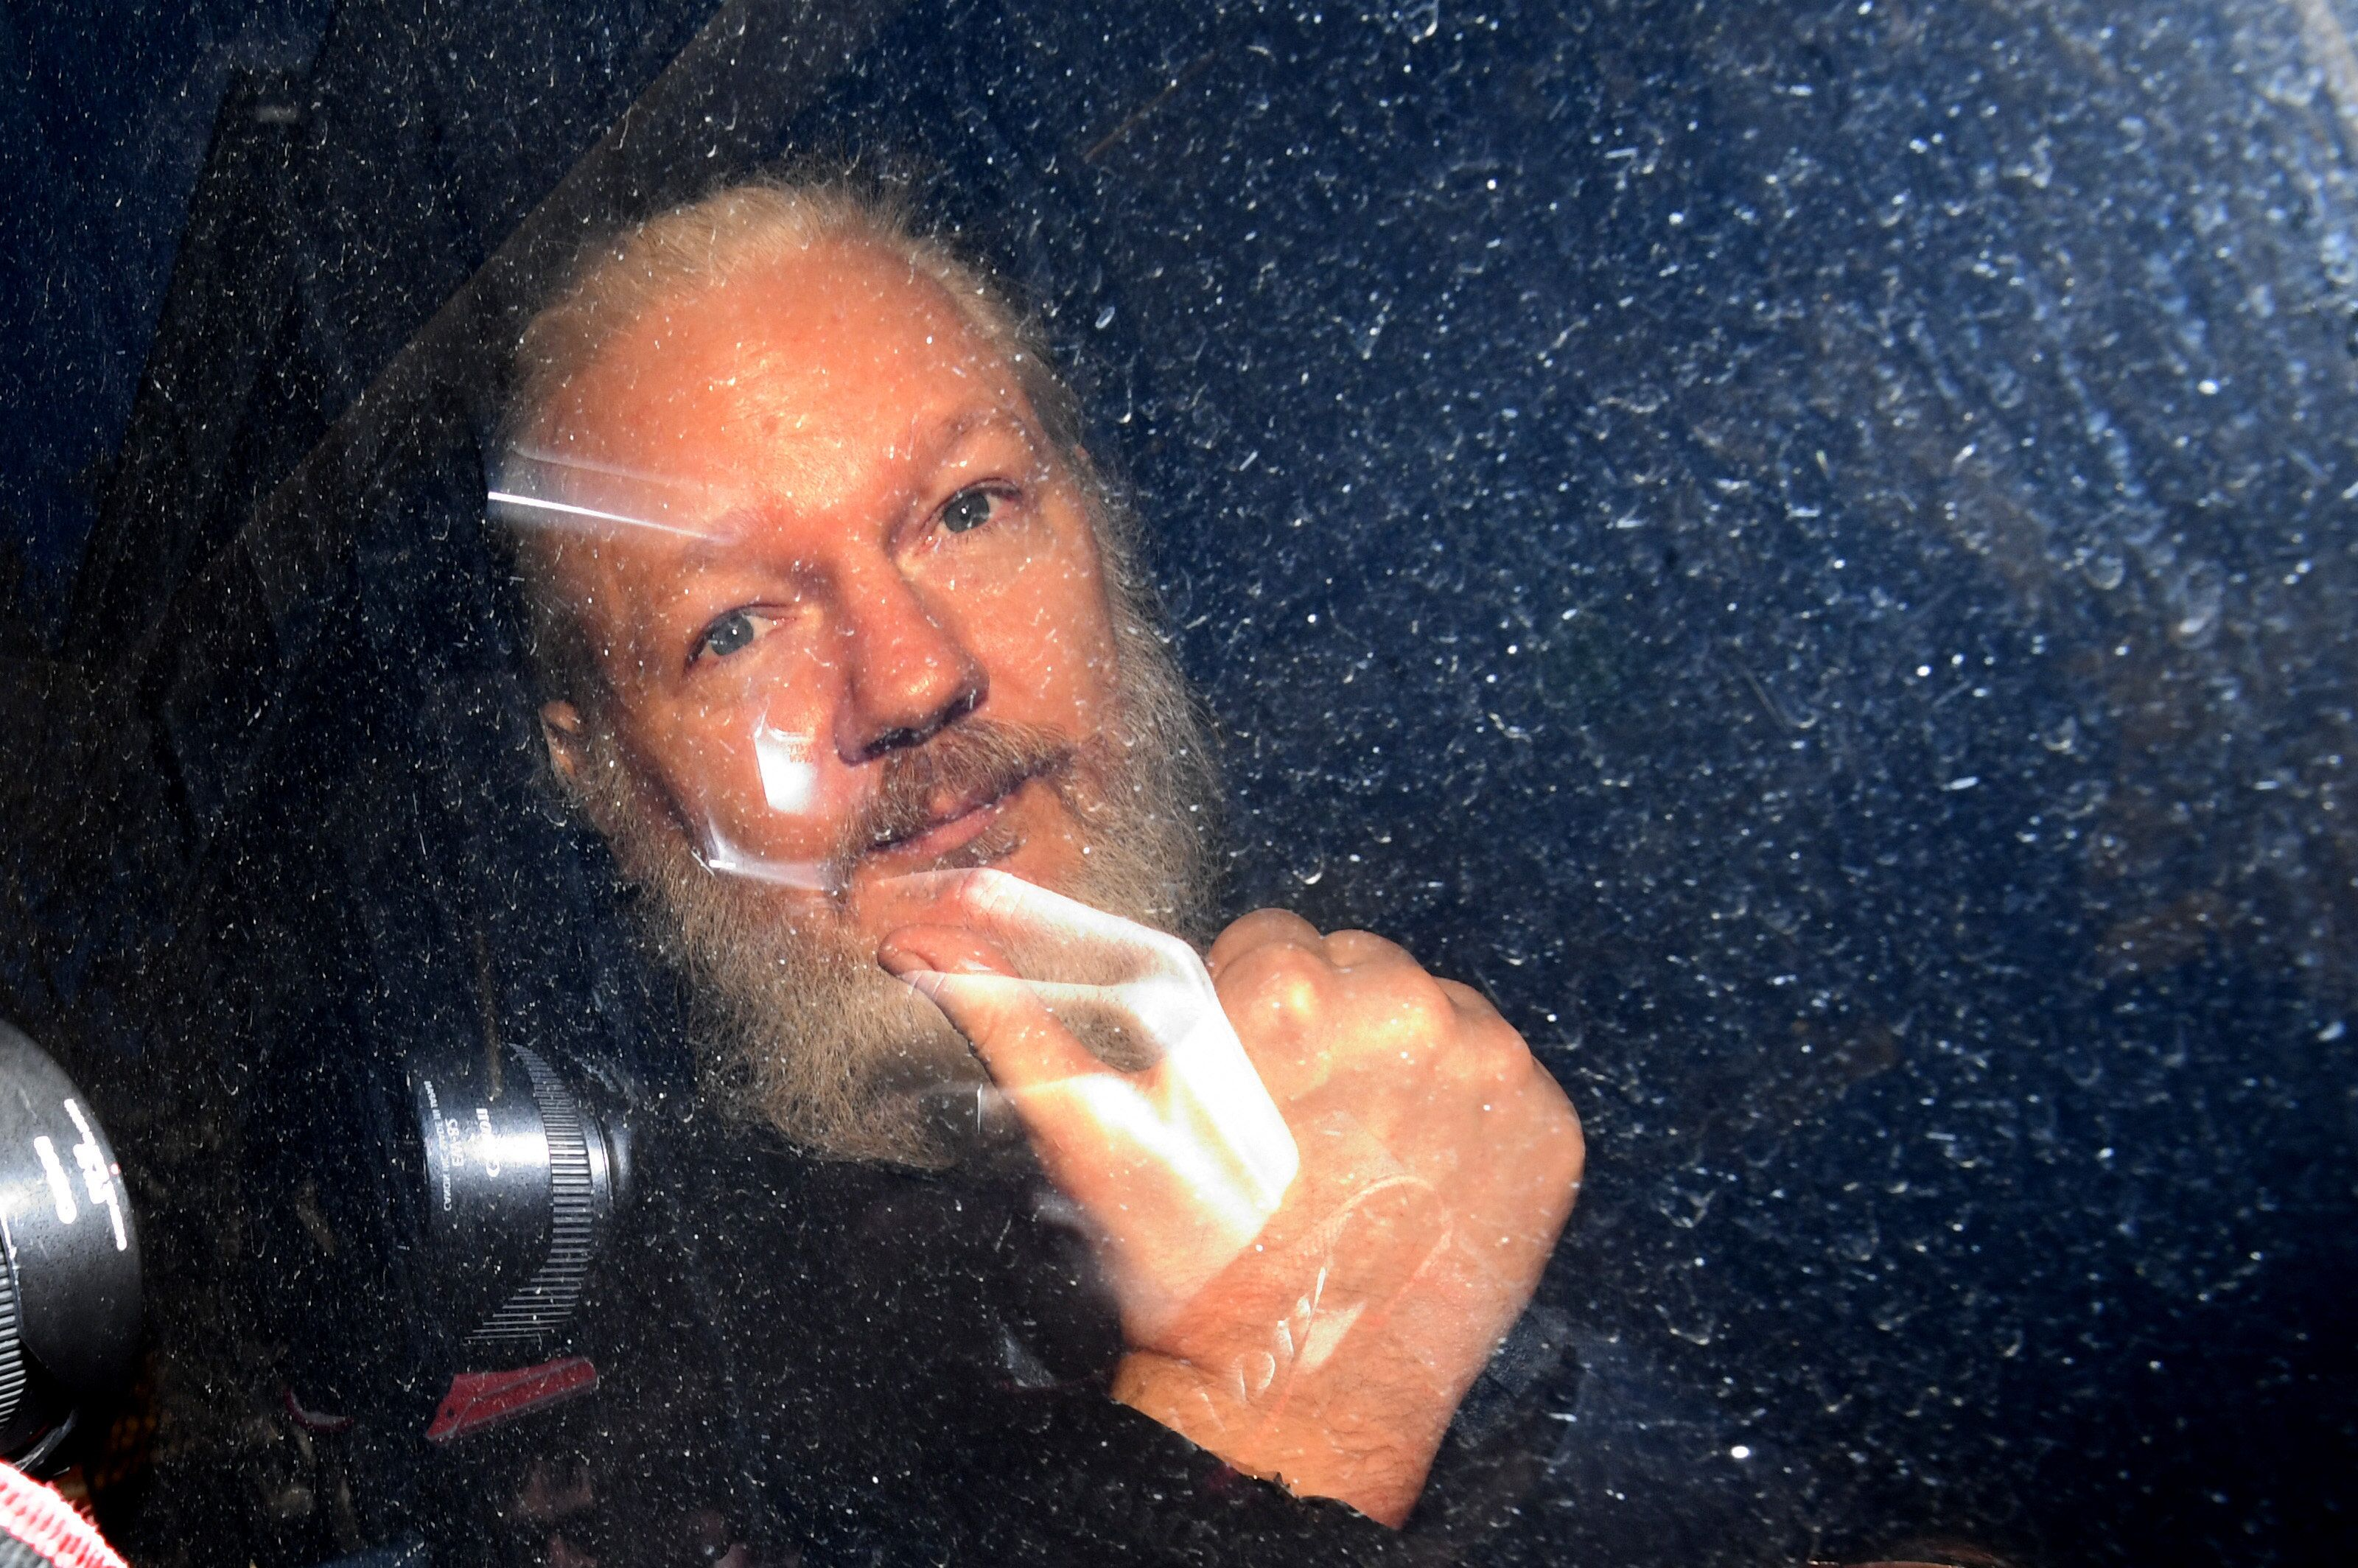 Julian Assange has been charged by the US government with conspiracy to commitcomputer intrusion, according to an indictment released after his arrest onThursday morning